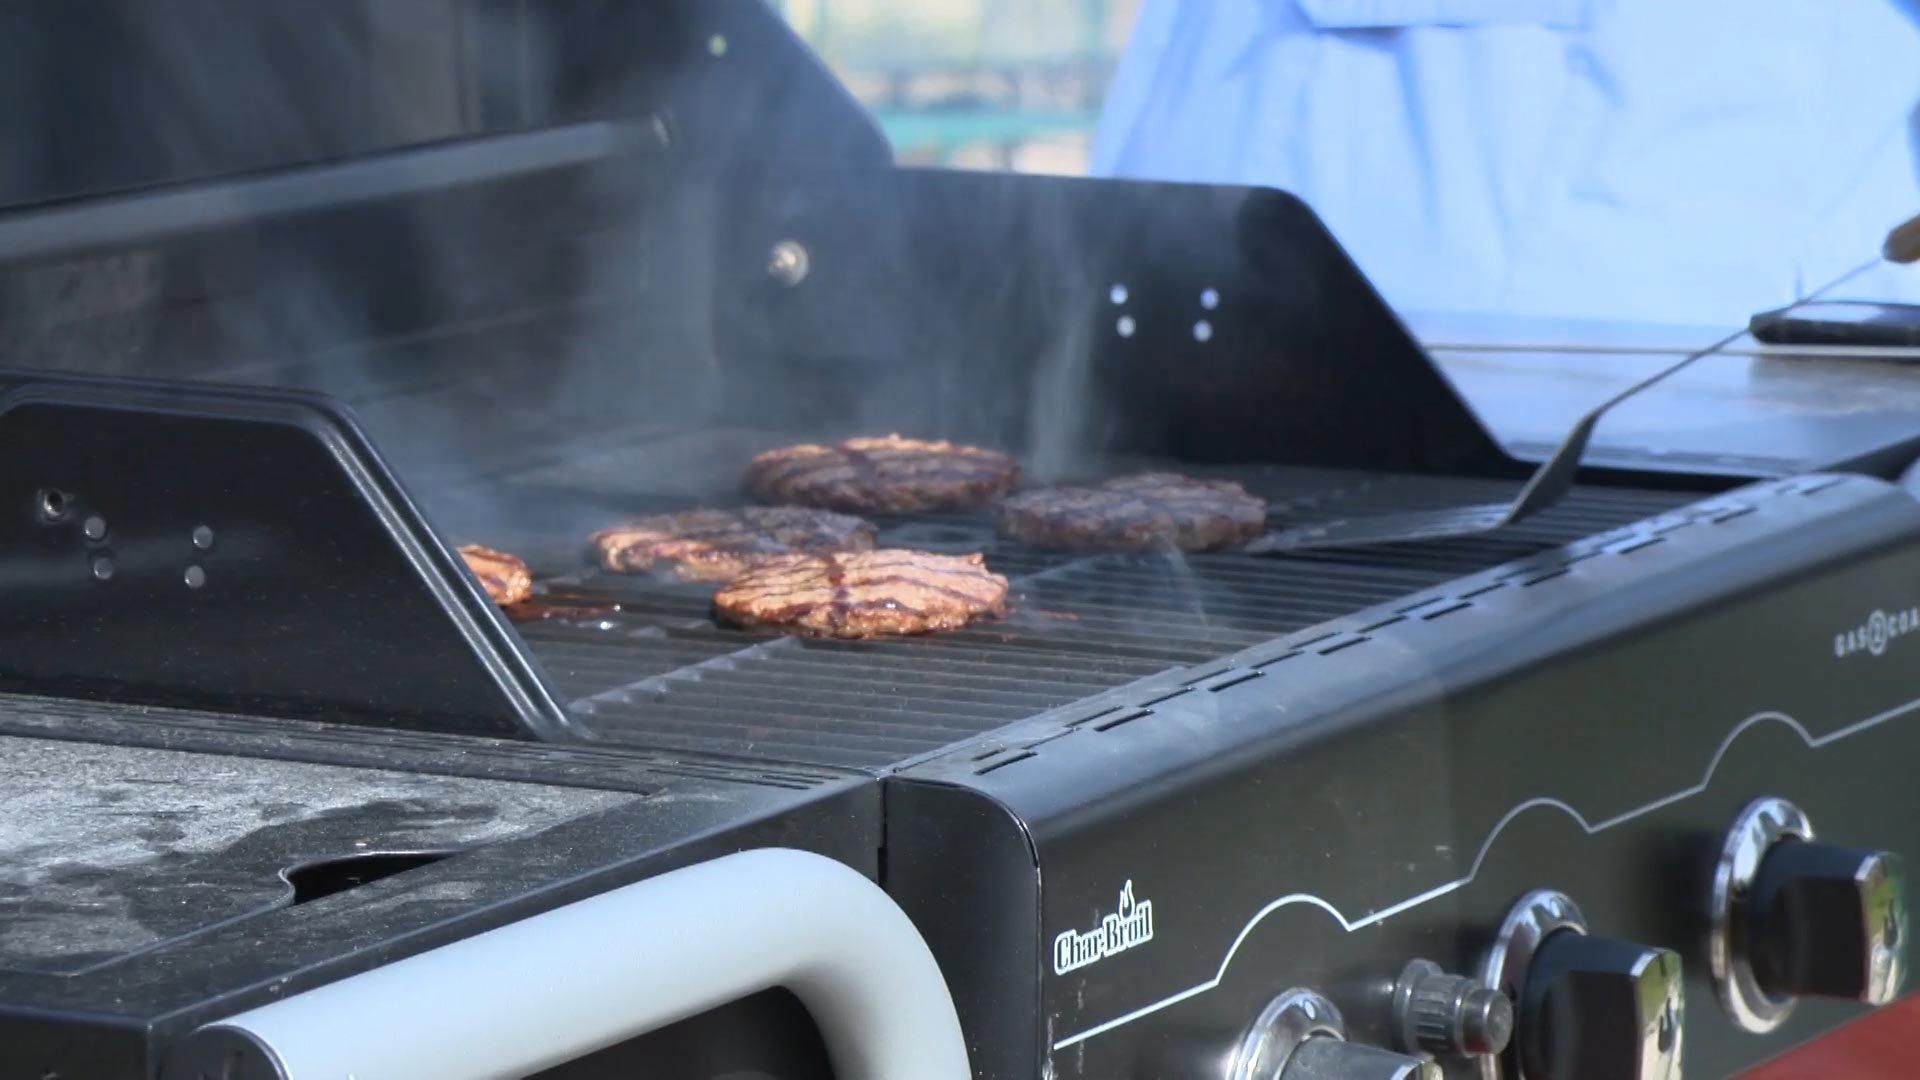 Consumer Reports Tests Two Grills That Give Outdoor Cooks A Choice